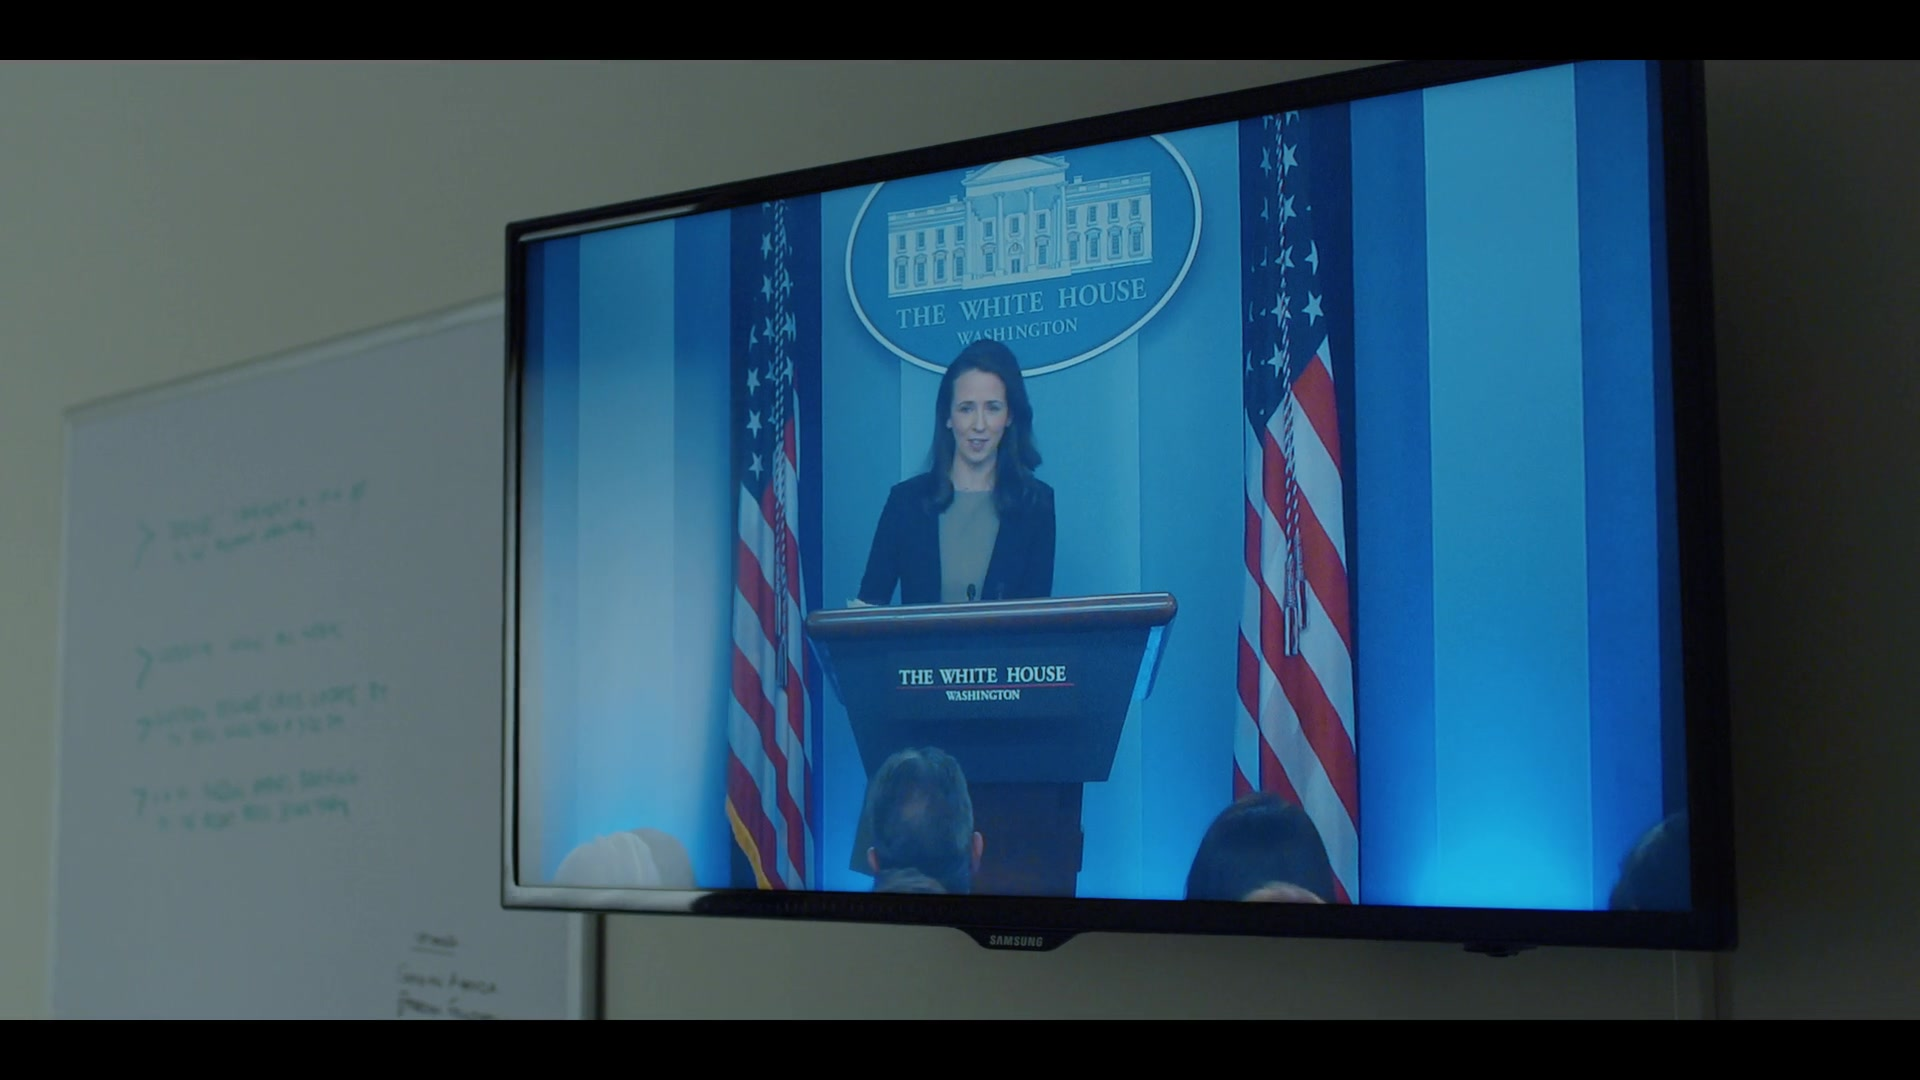 Samsung Tv In House Of Cards Season 6 Episode 2 Chapter 67 2018 Tv